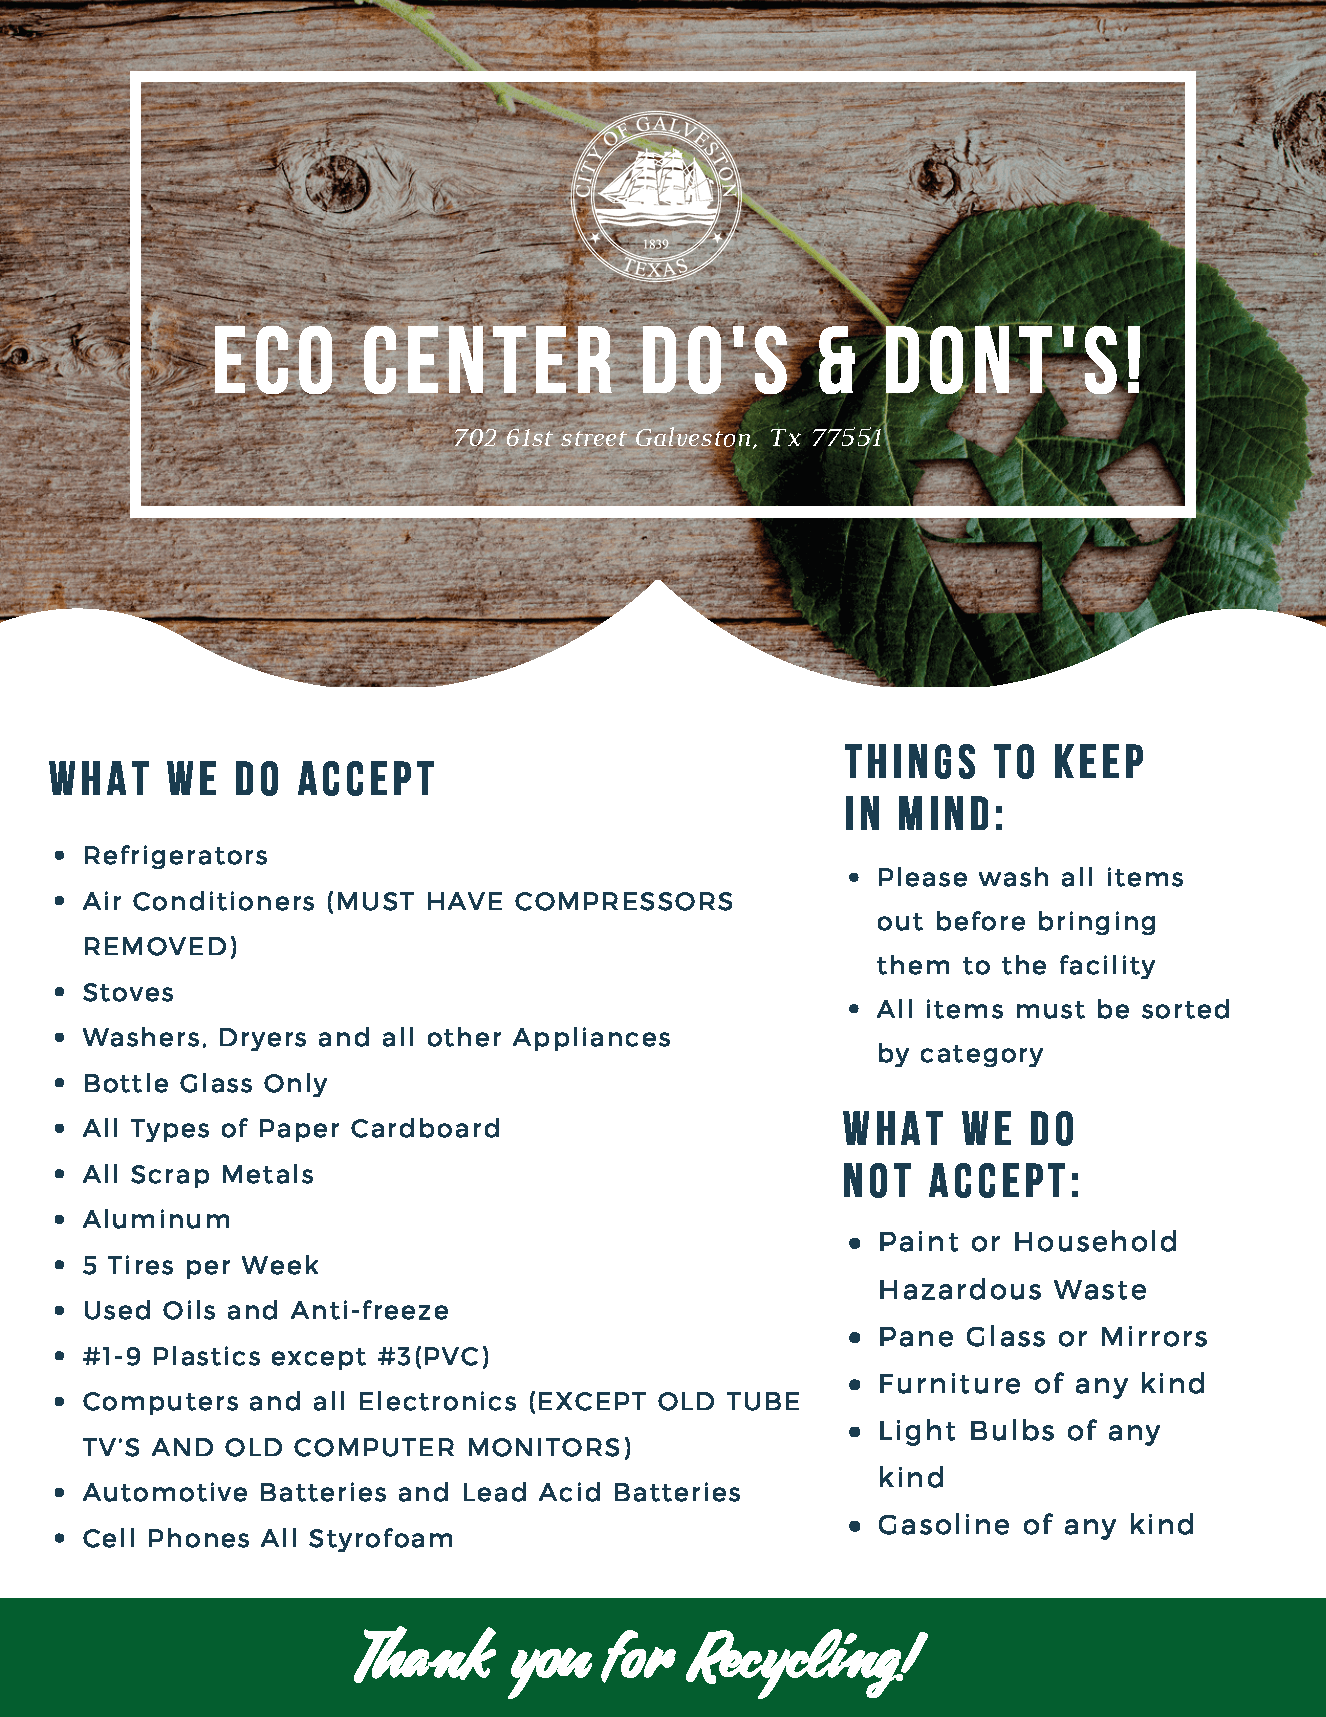 Eco Center Do's and Dont's